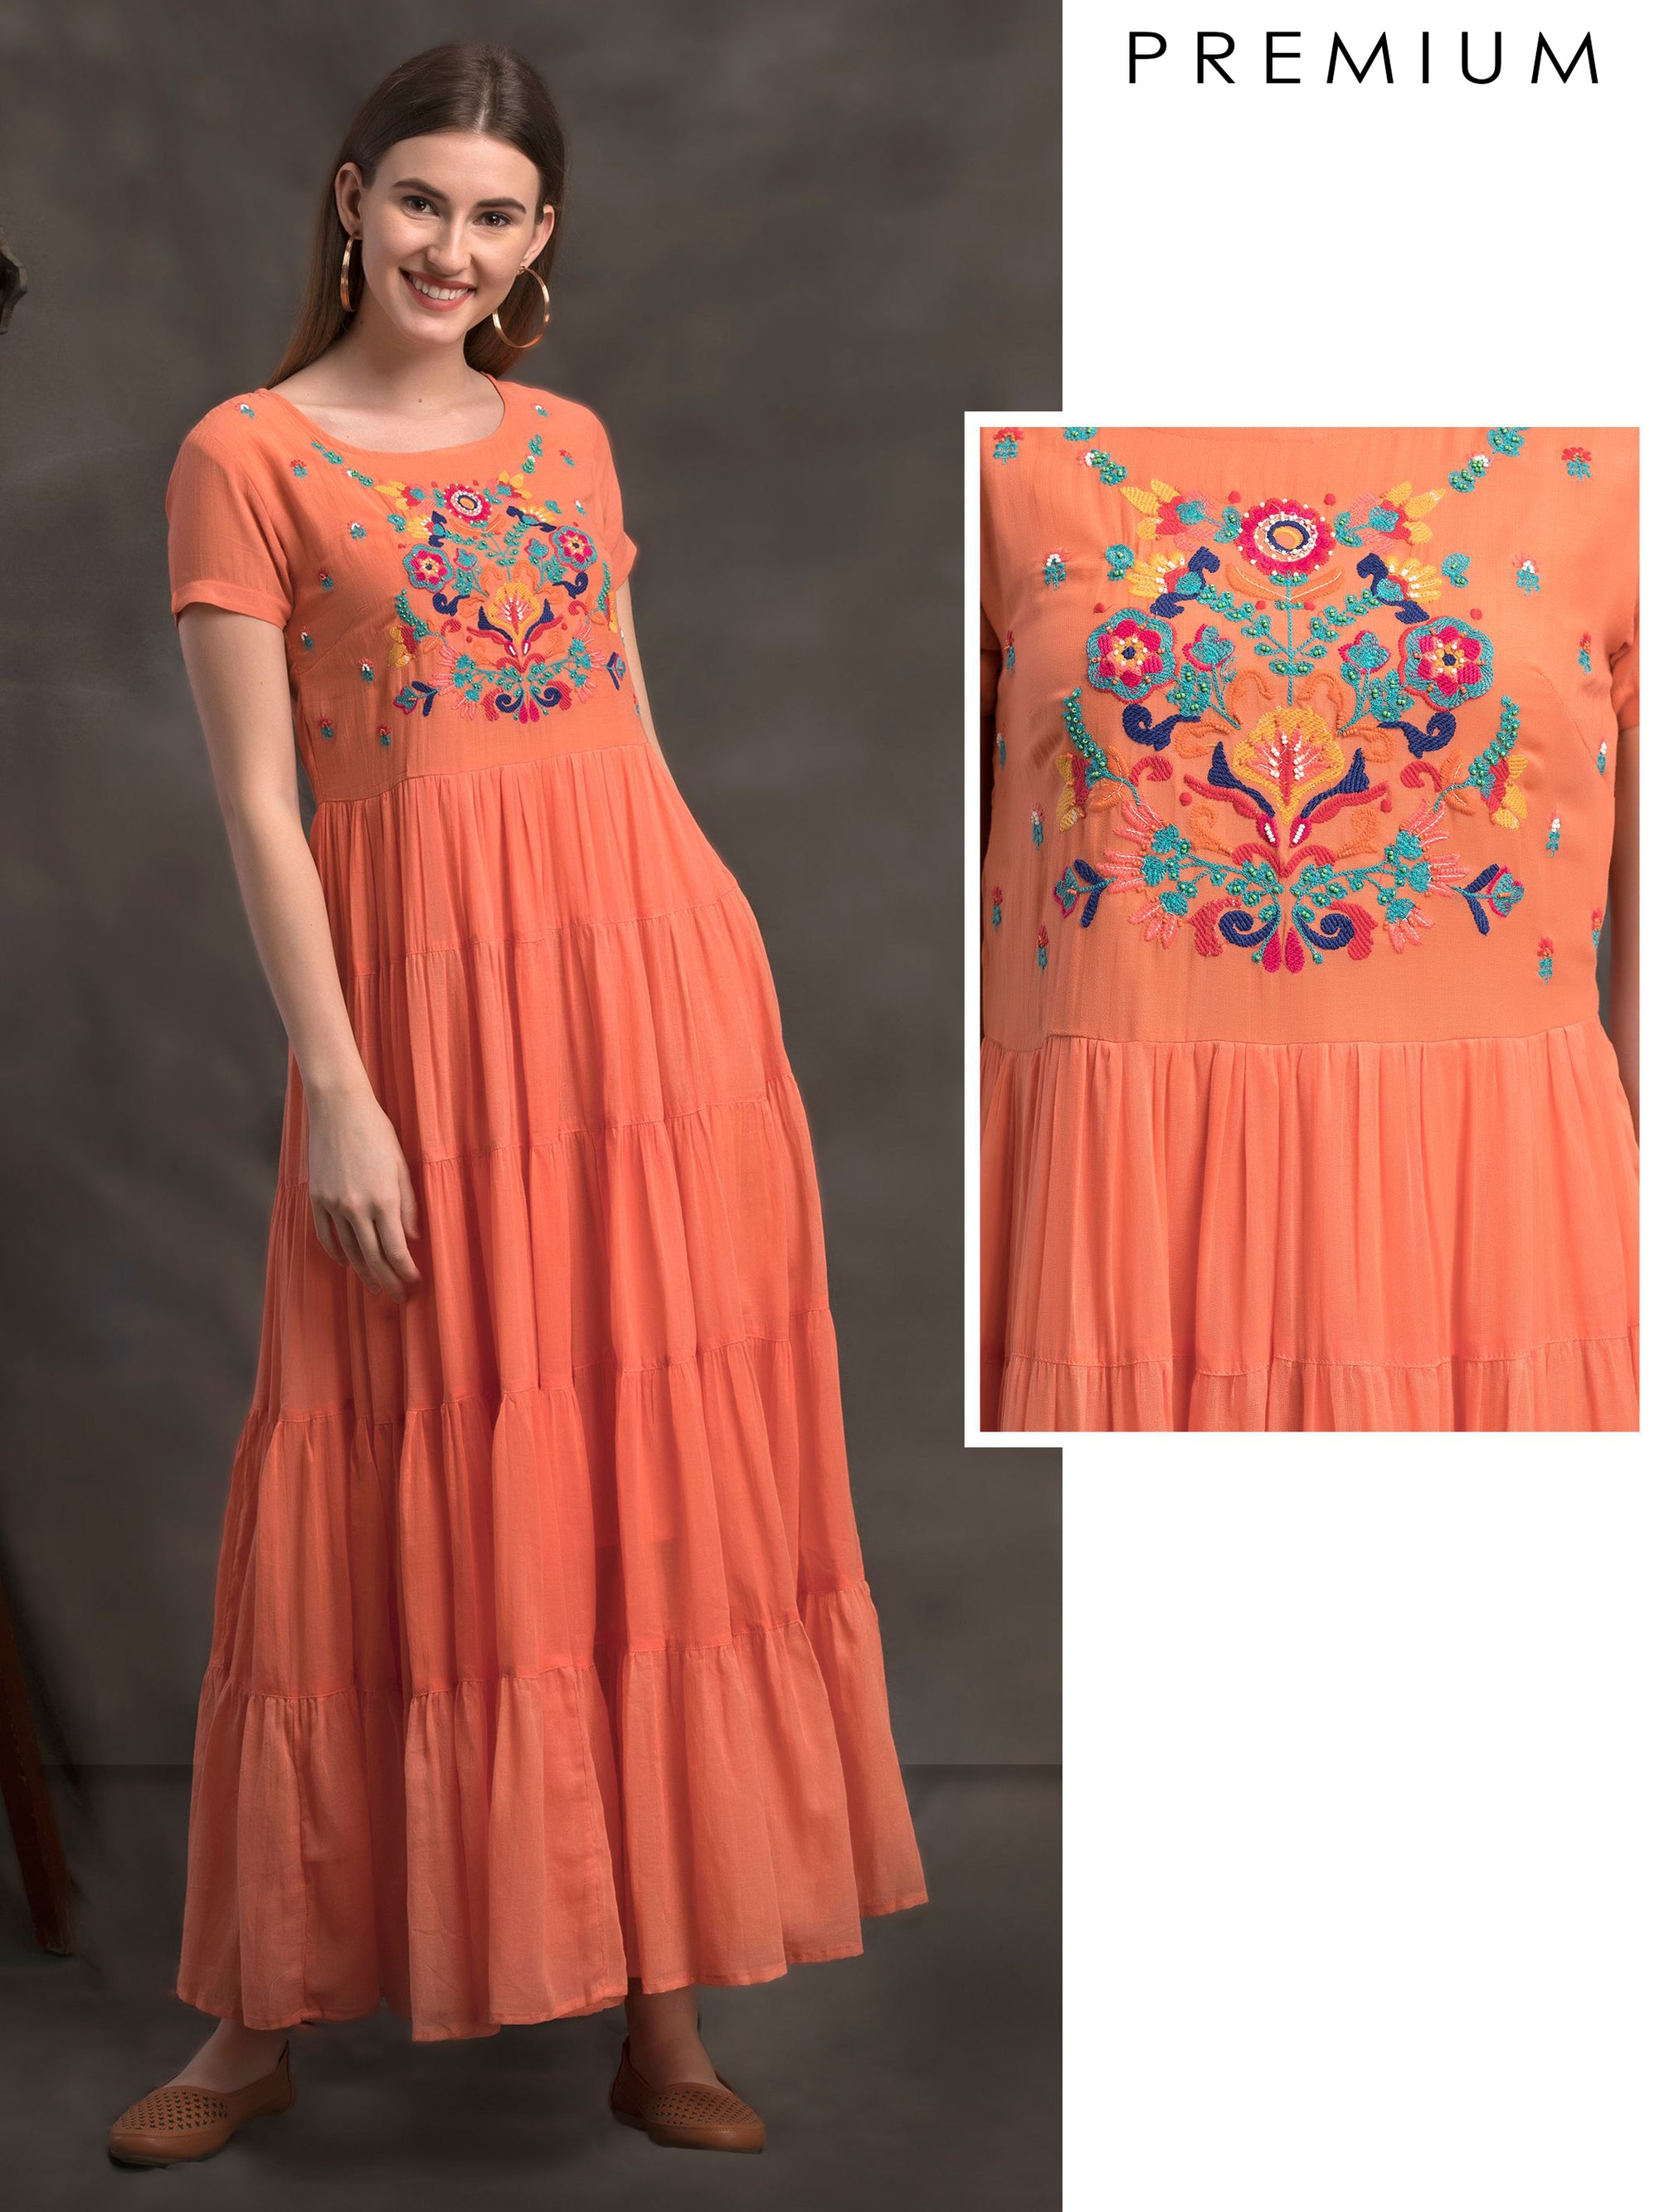 Tiered Maxi Dress With Colourful Thread and Bead Floral Embroidery - Orange